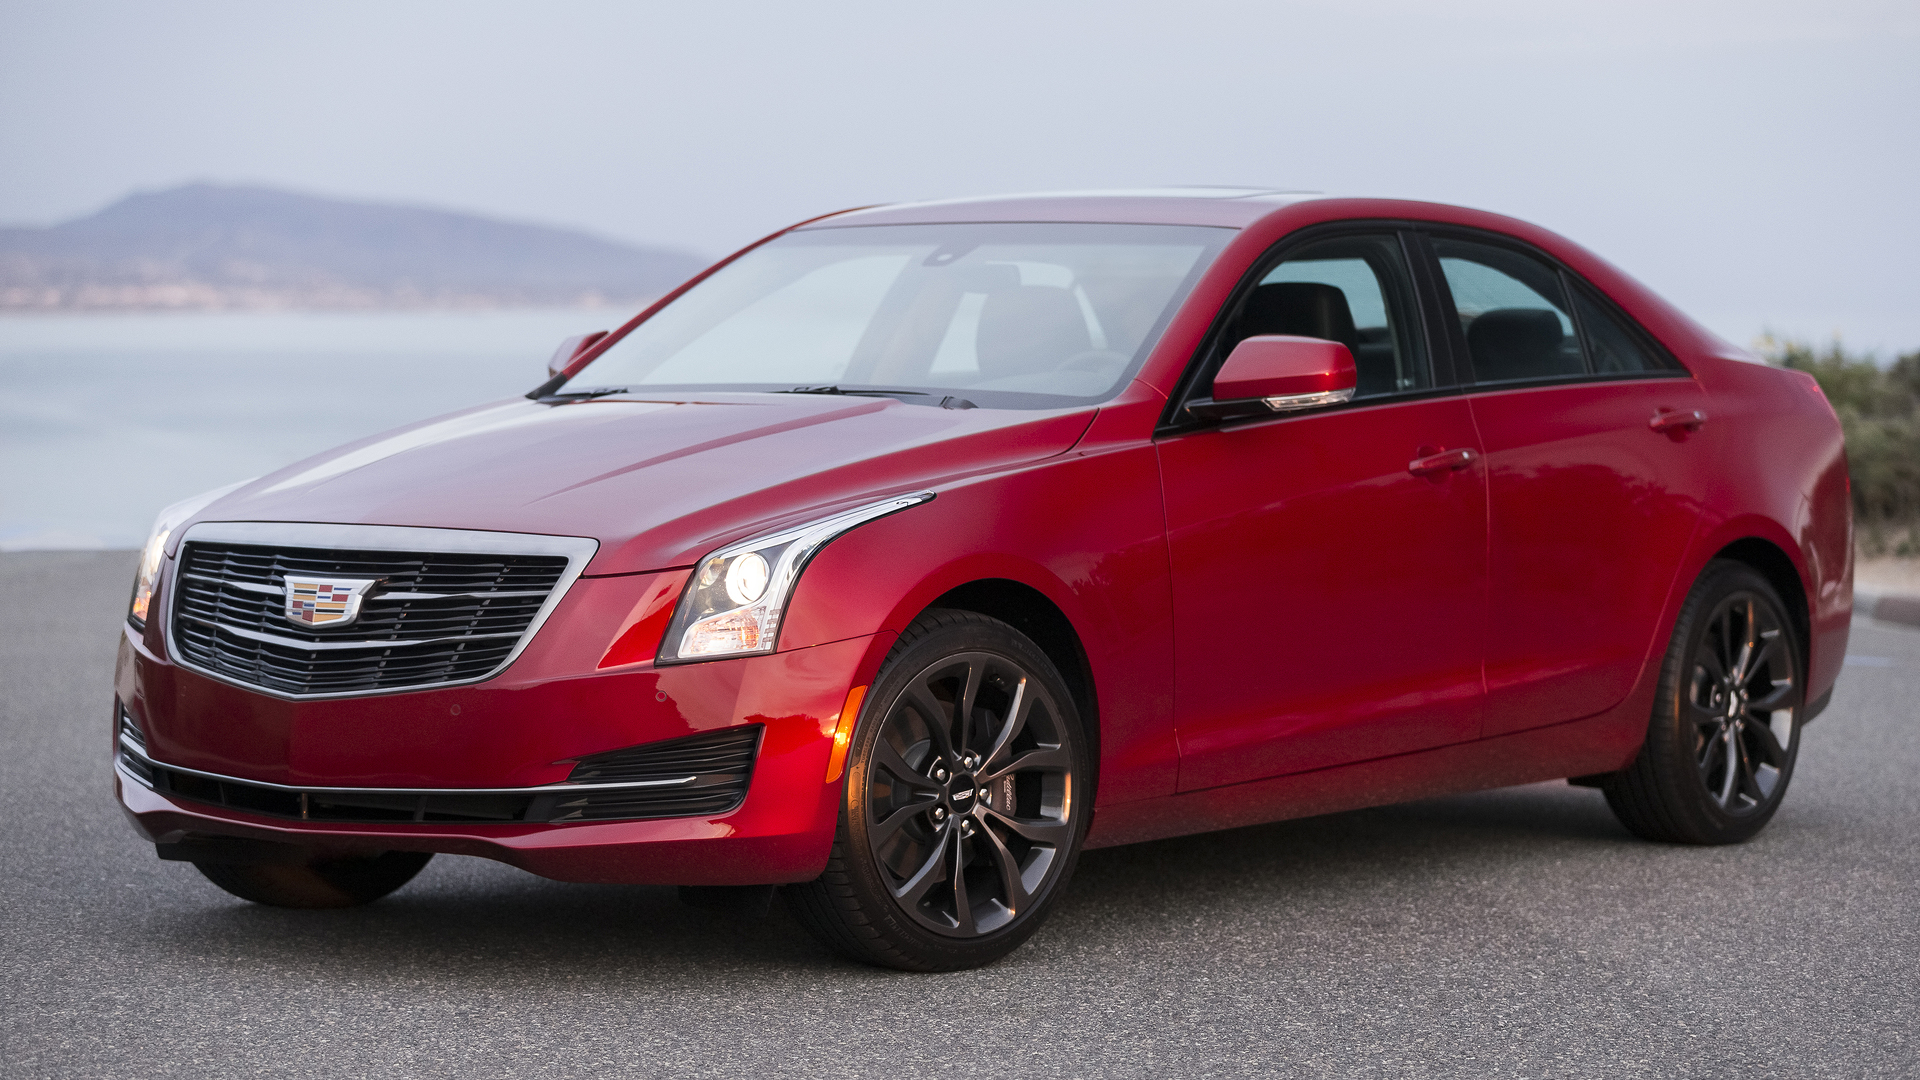 sedan ats at luxury rwd used detail cadillac